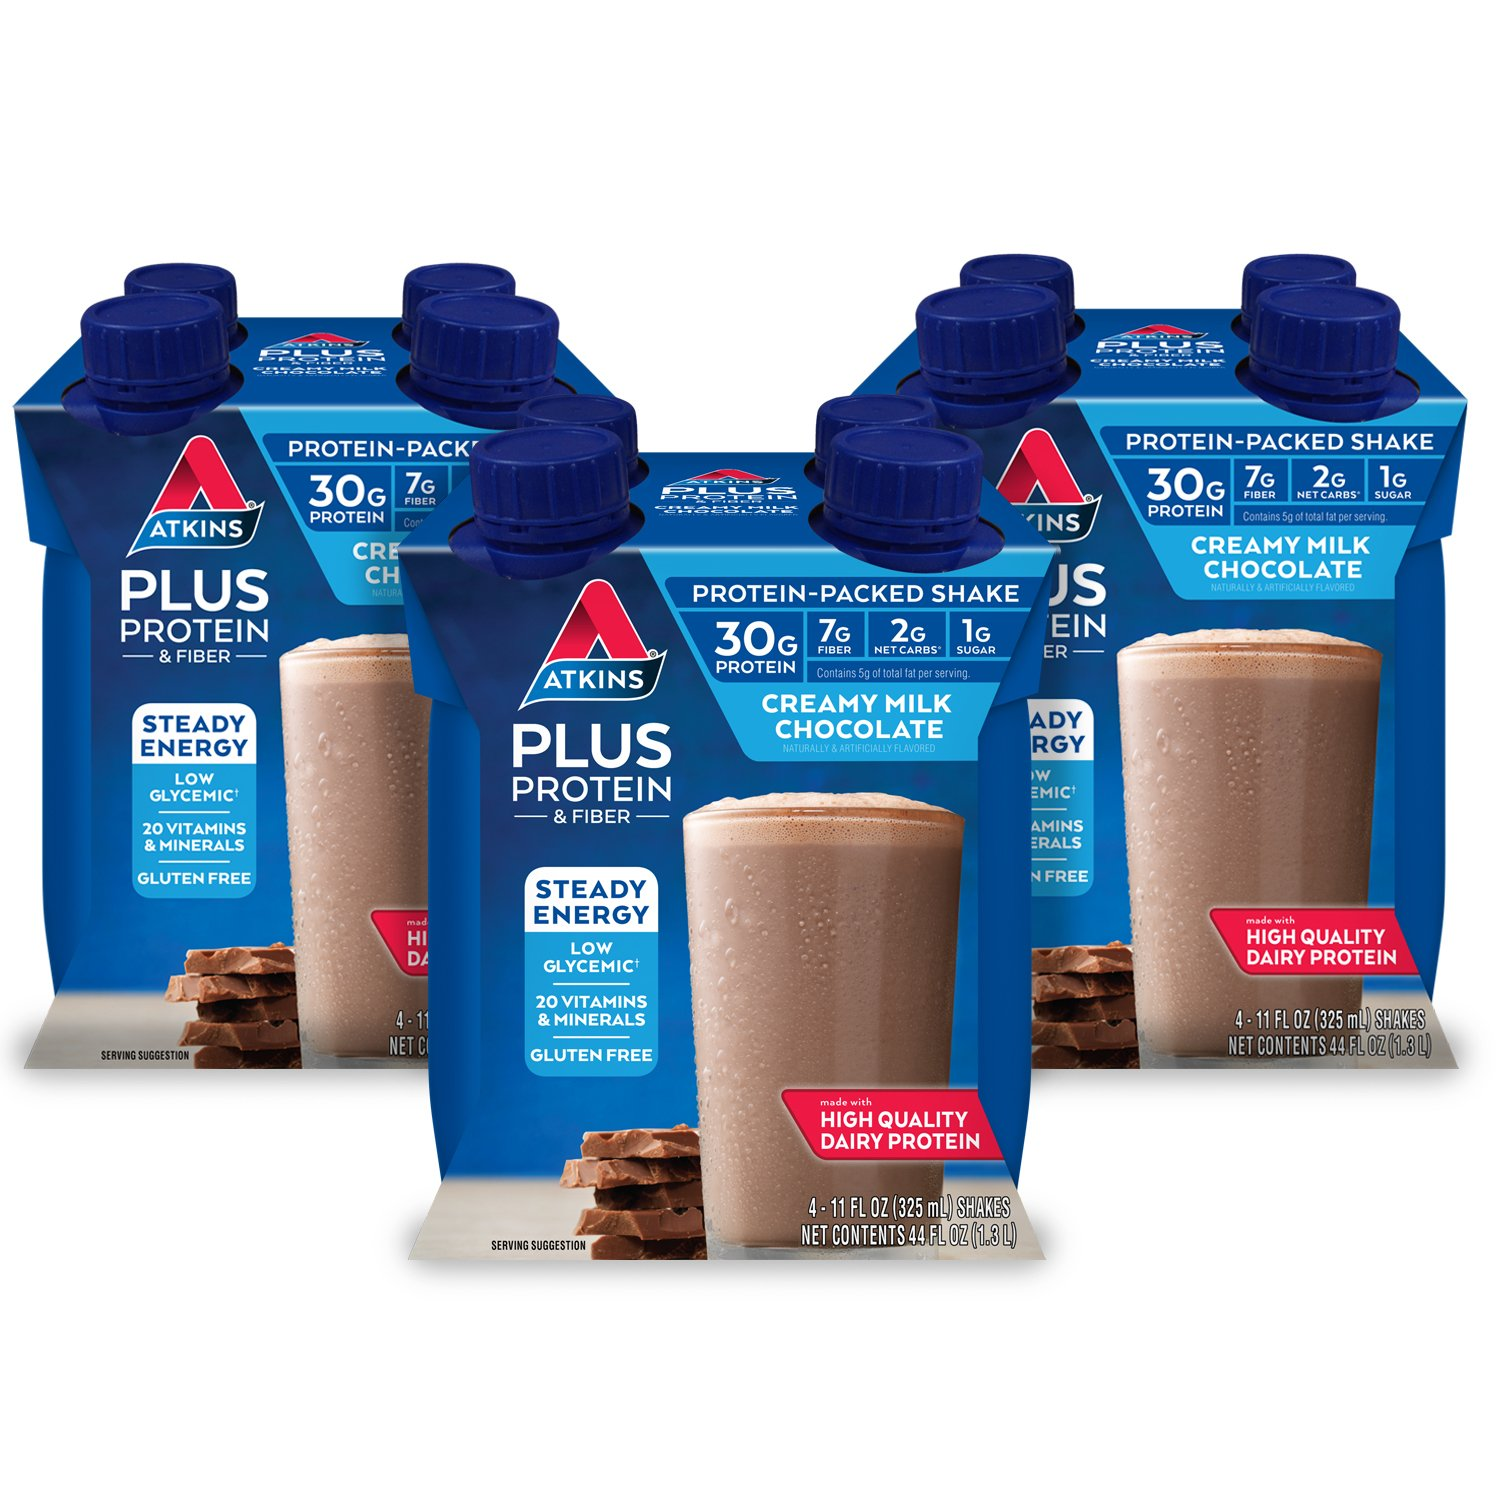 Atkins PLUS Protein & Fiber Shake, Chocolate, Keto Friendly, 11 oz., 4 Count (Pack of 3) by Atkins